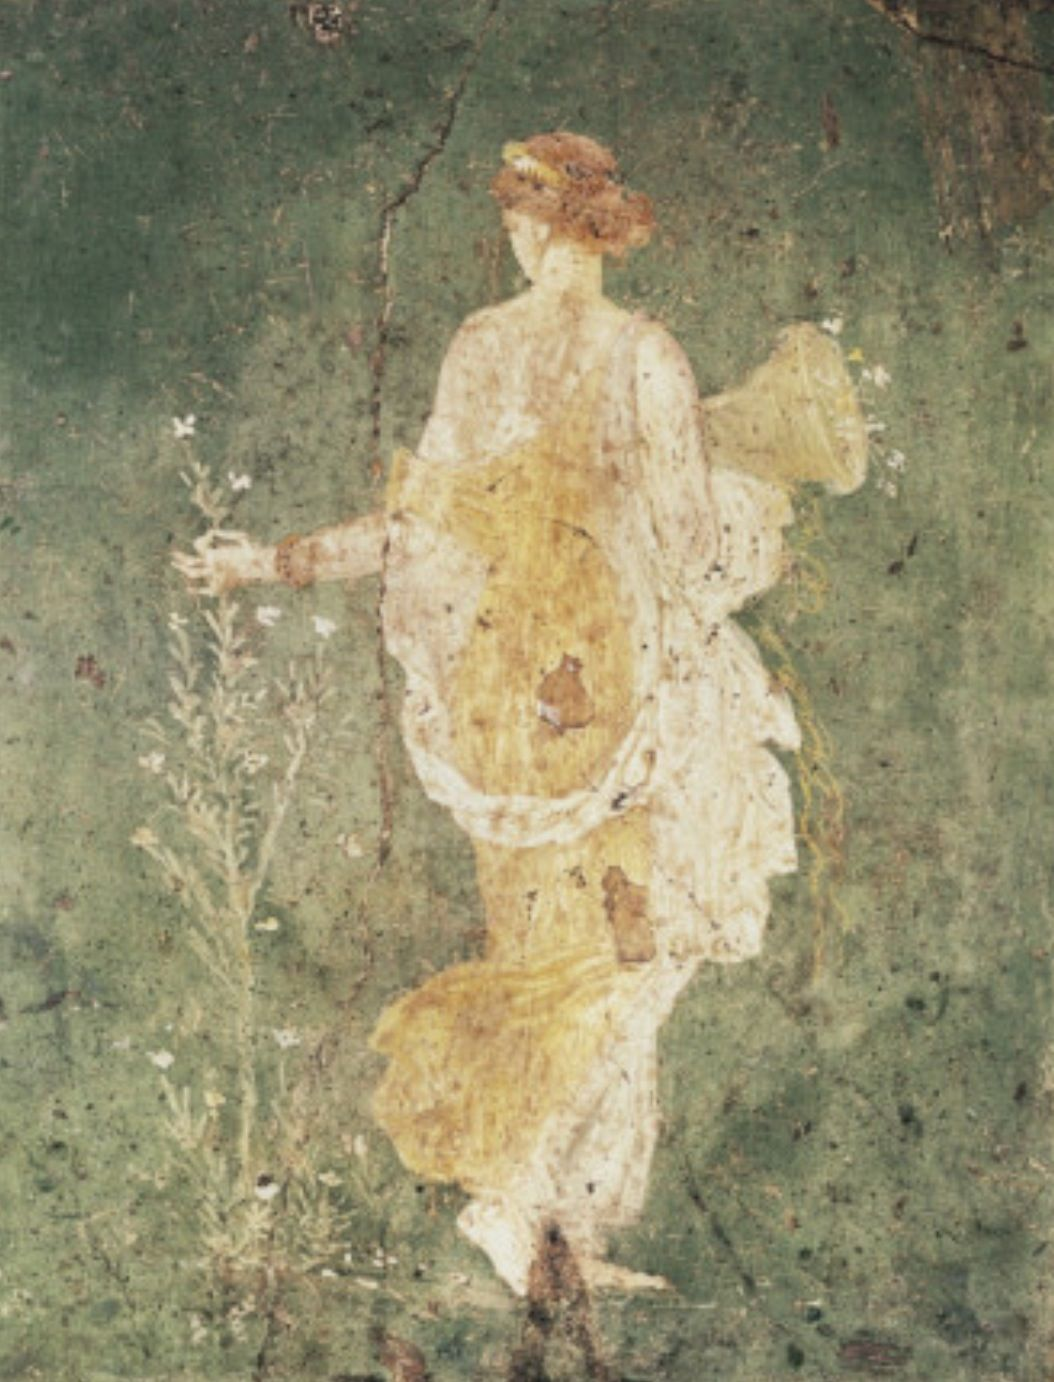 Wall from ancient Pompeii | GreatArt | Pinterest | Ancient pompeii